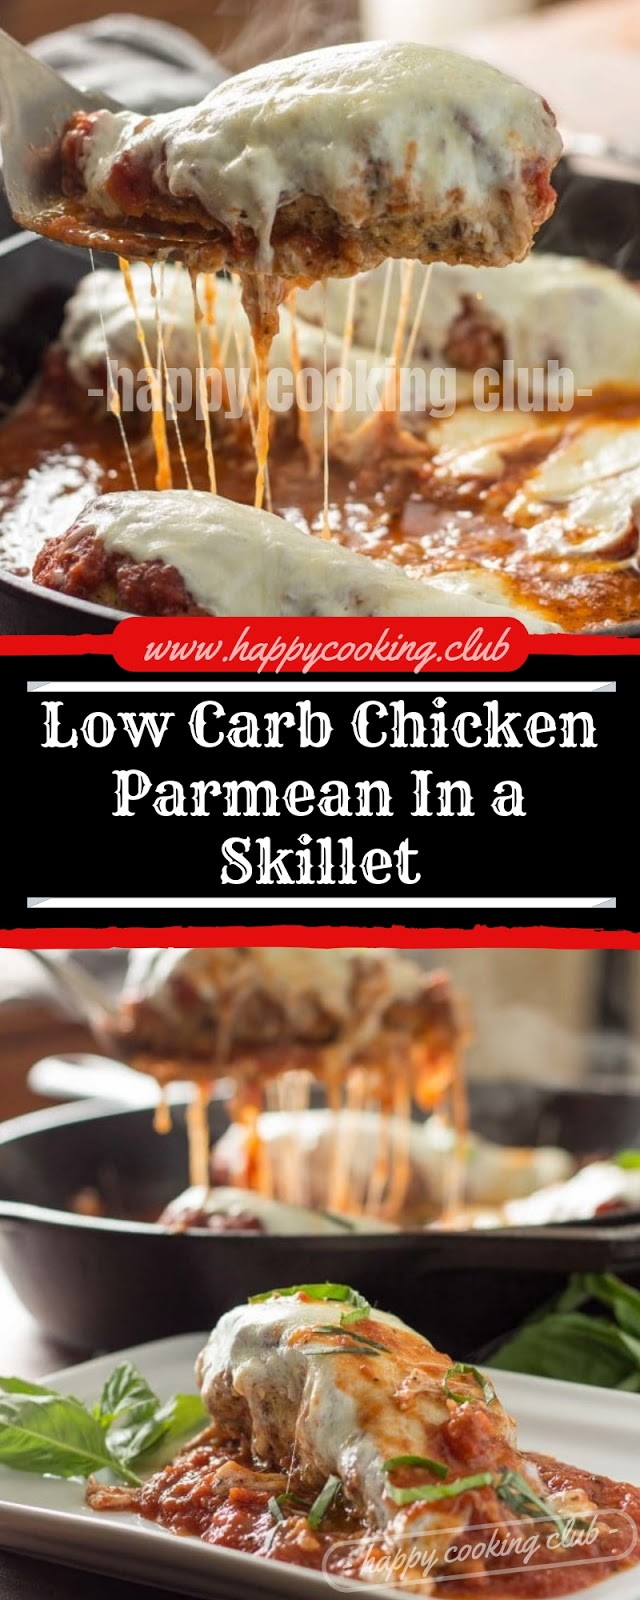 Low Carb Chicken Parmean In a Skillet